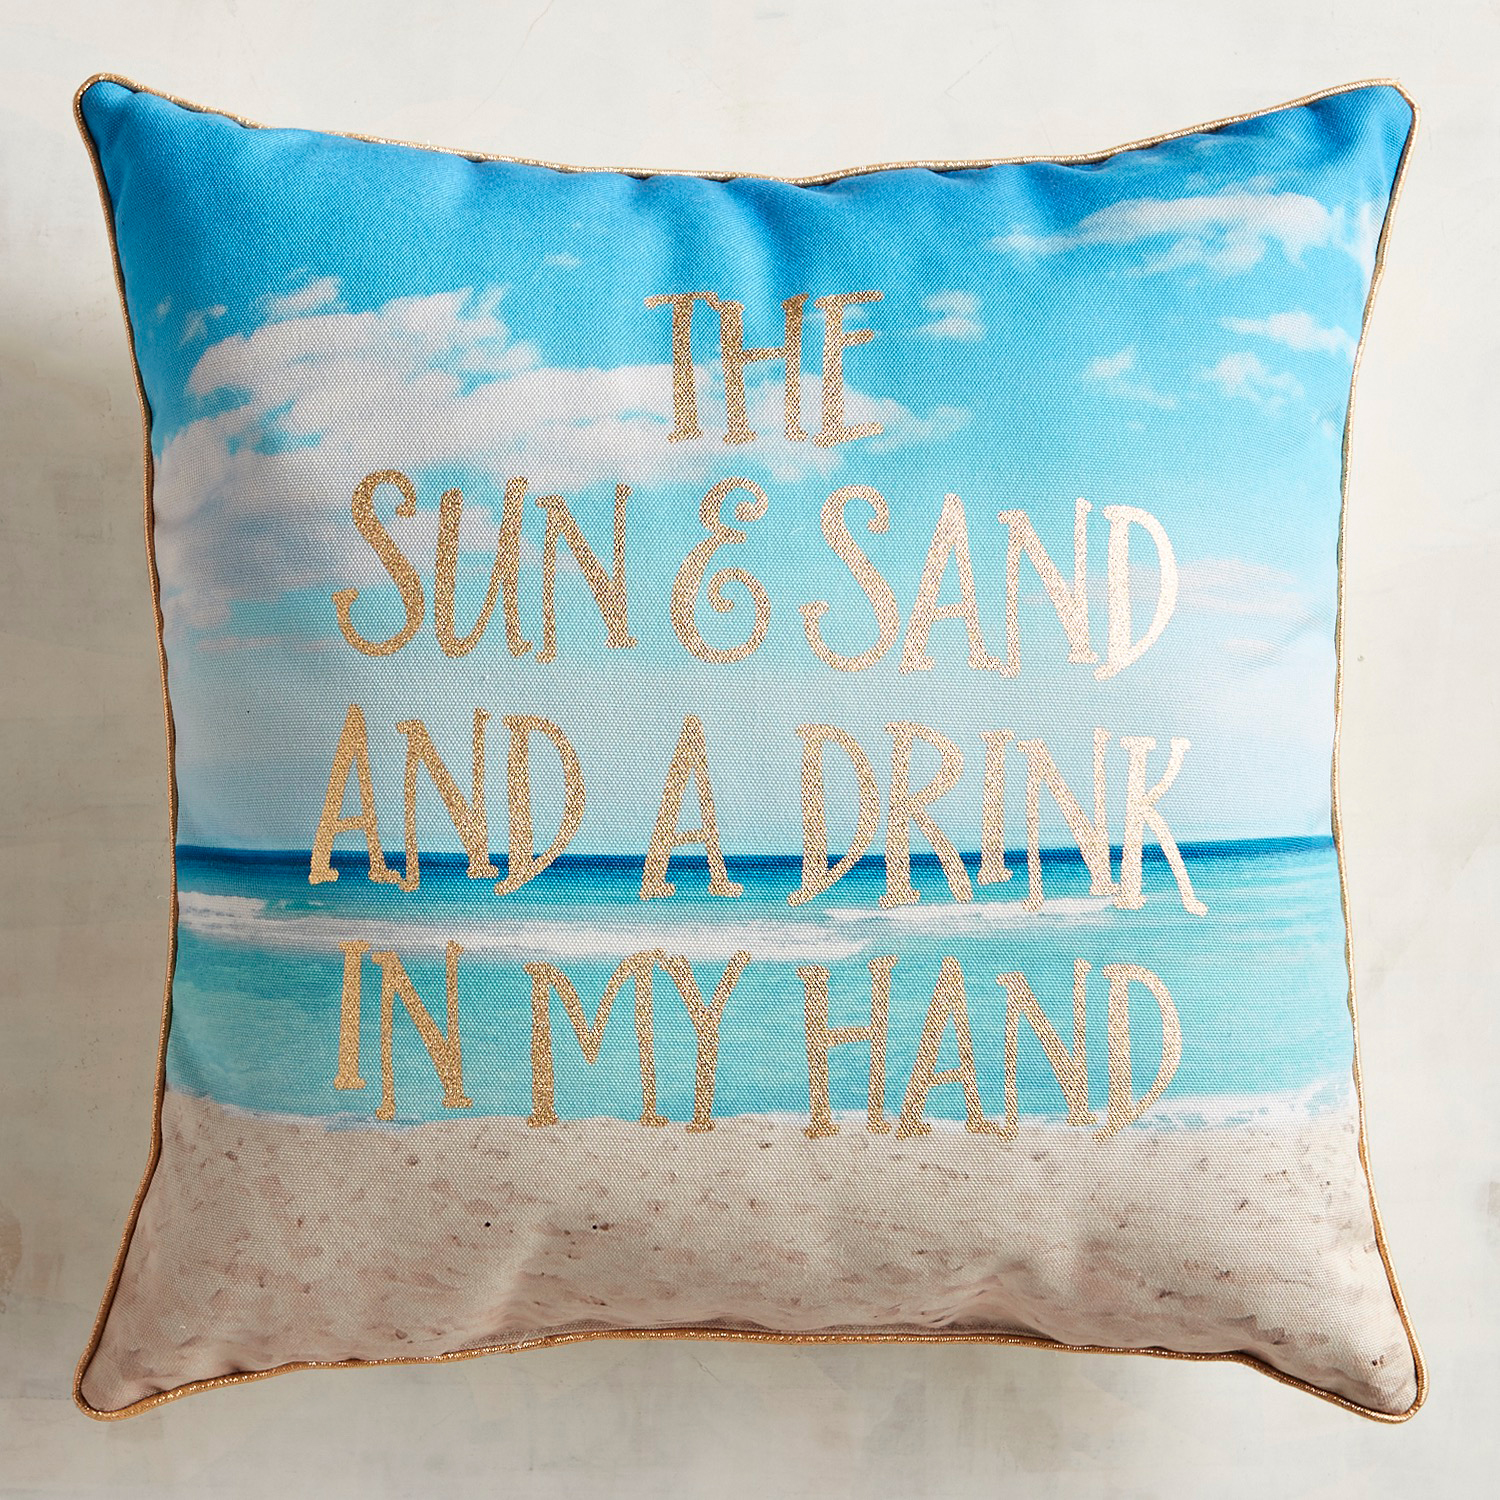 Printed Sun, Sand, Drink in Hand Pillow